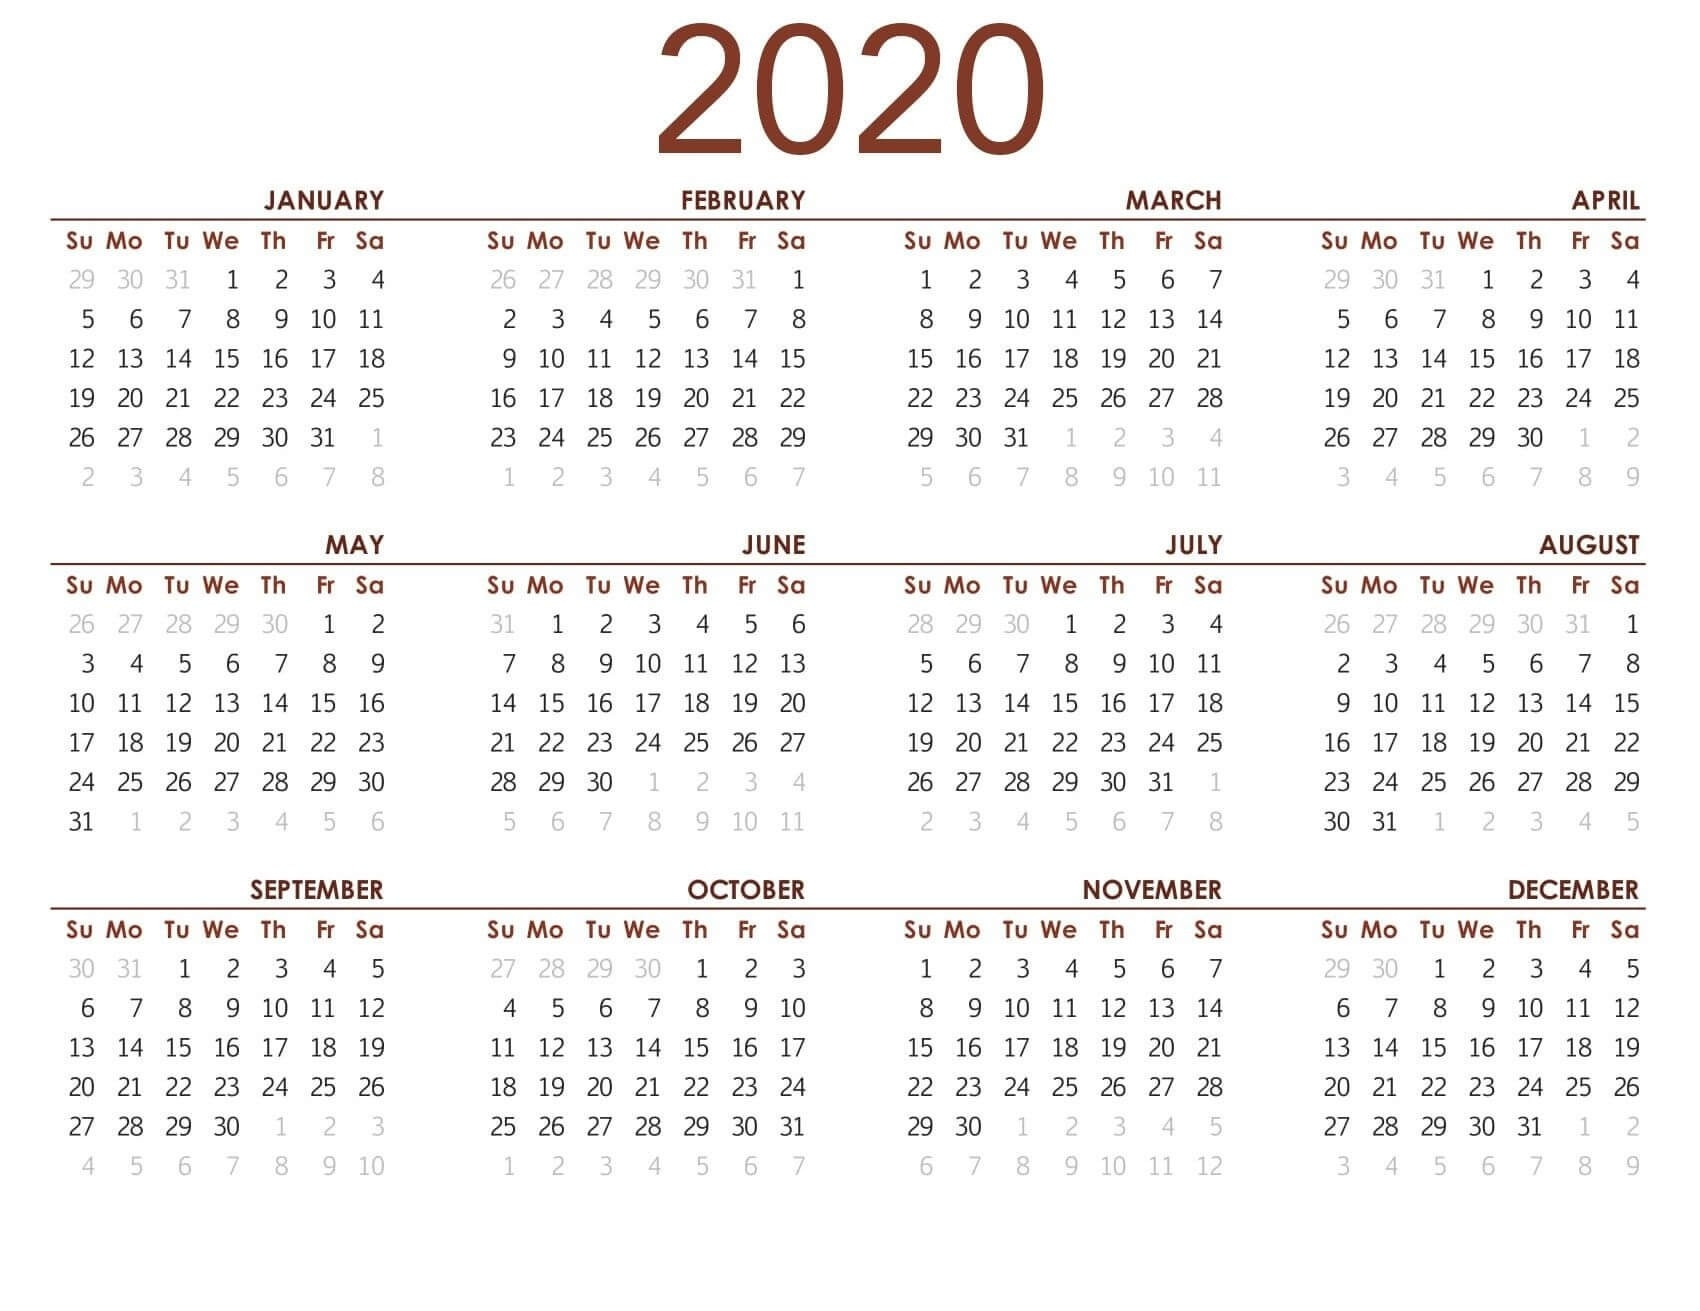 Printable Calendar 2020 With Notes - 2019 Calendars For-2020 Month At A Glance Calendar Template